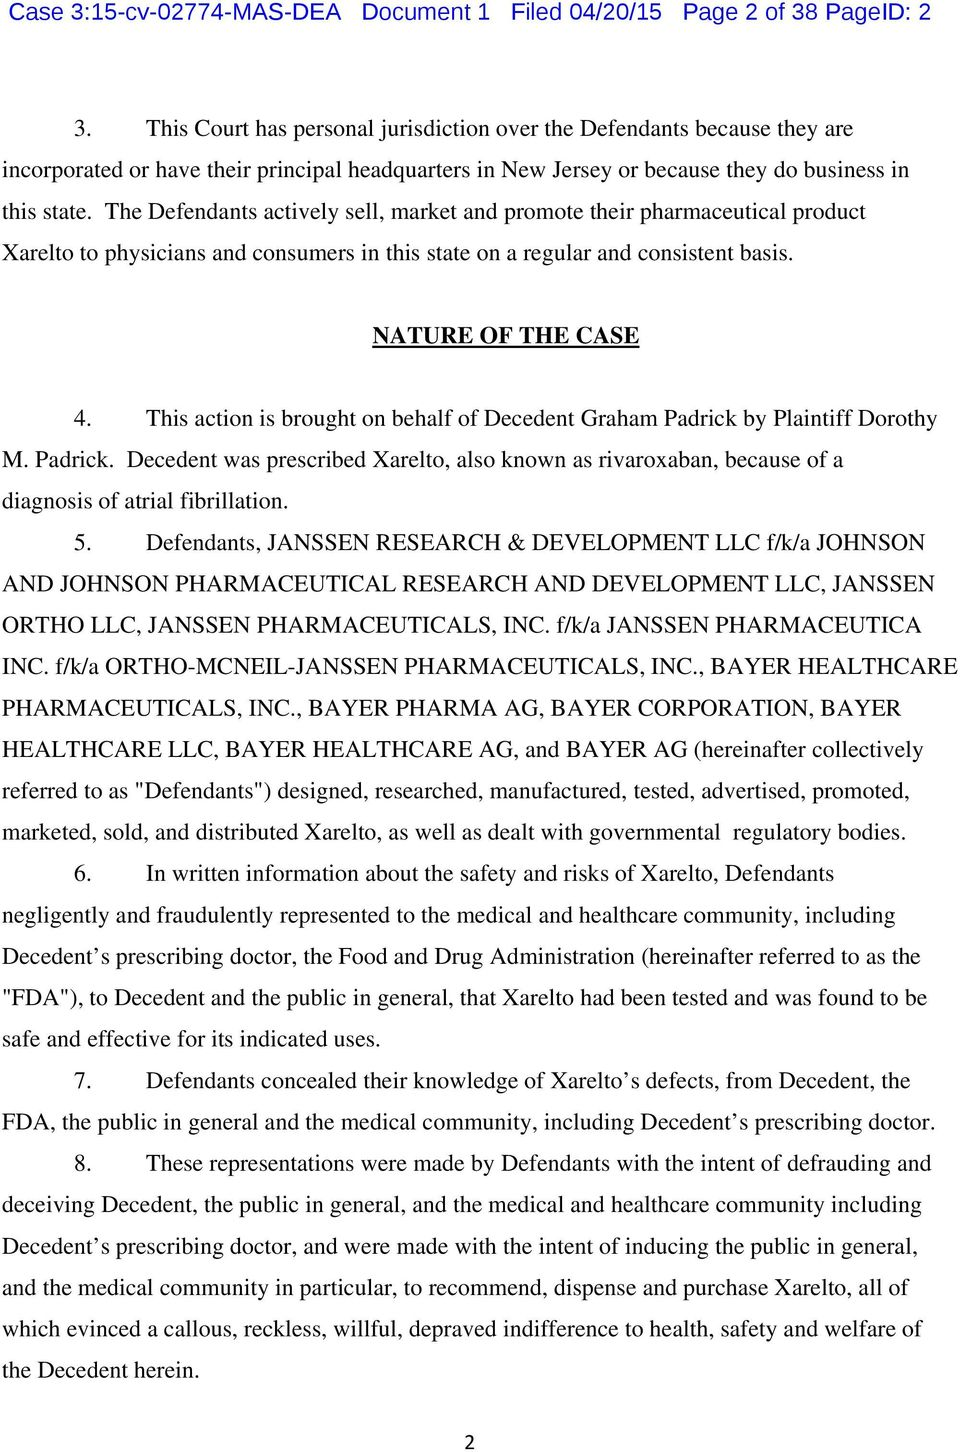 The Defendants actively sell, market and promote their pharmaceutical product Xarelto to physicians and consumers in this state on a regular and consistent basis. NATURE OF THE CASE 4.